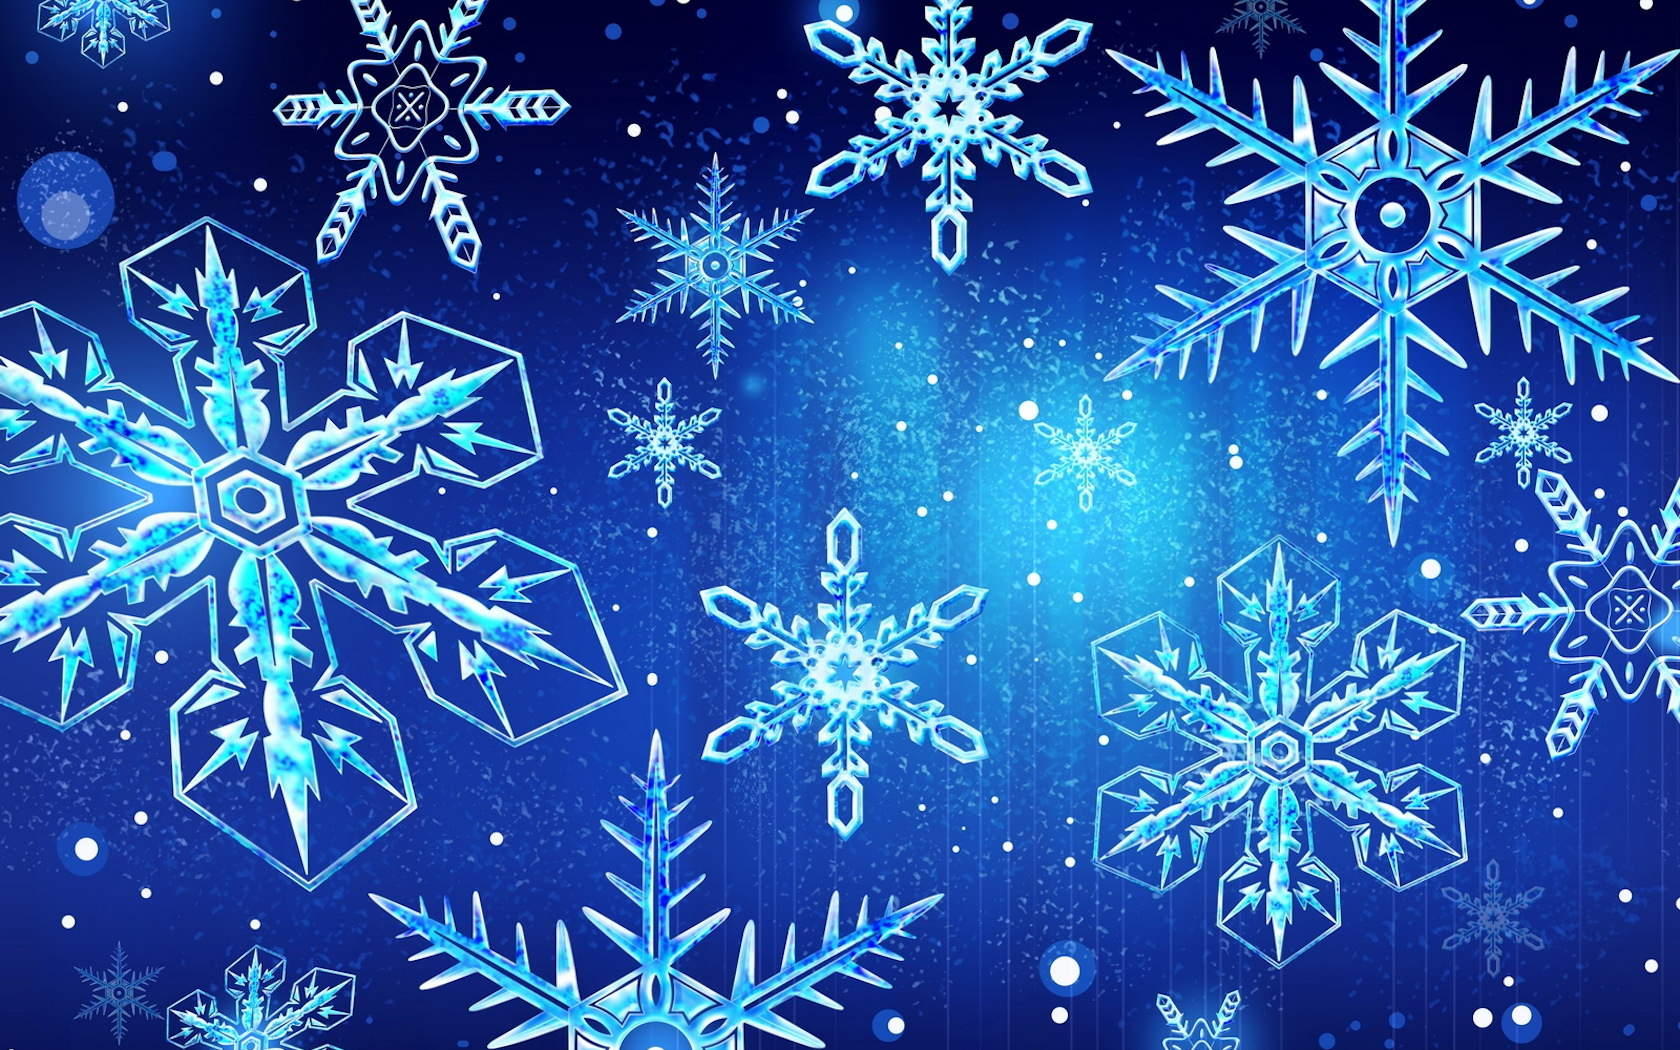 Excellent Wallpaper Desktop Christmas Snow Fall Hd Background 1680x1050px